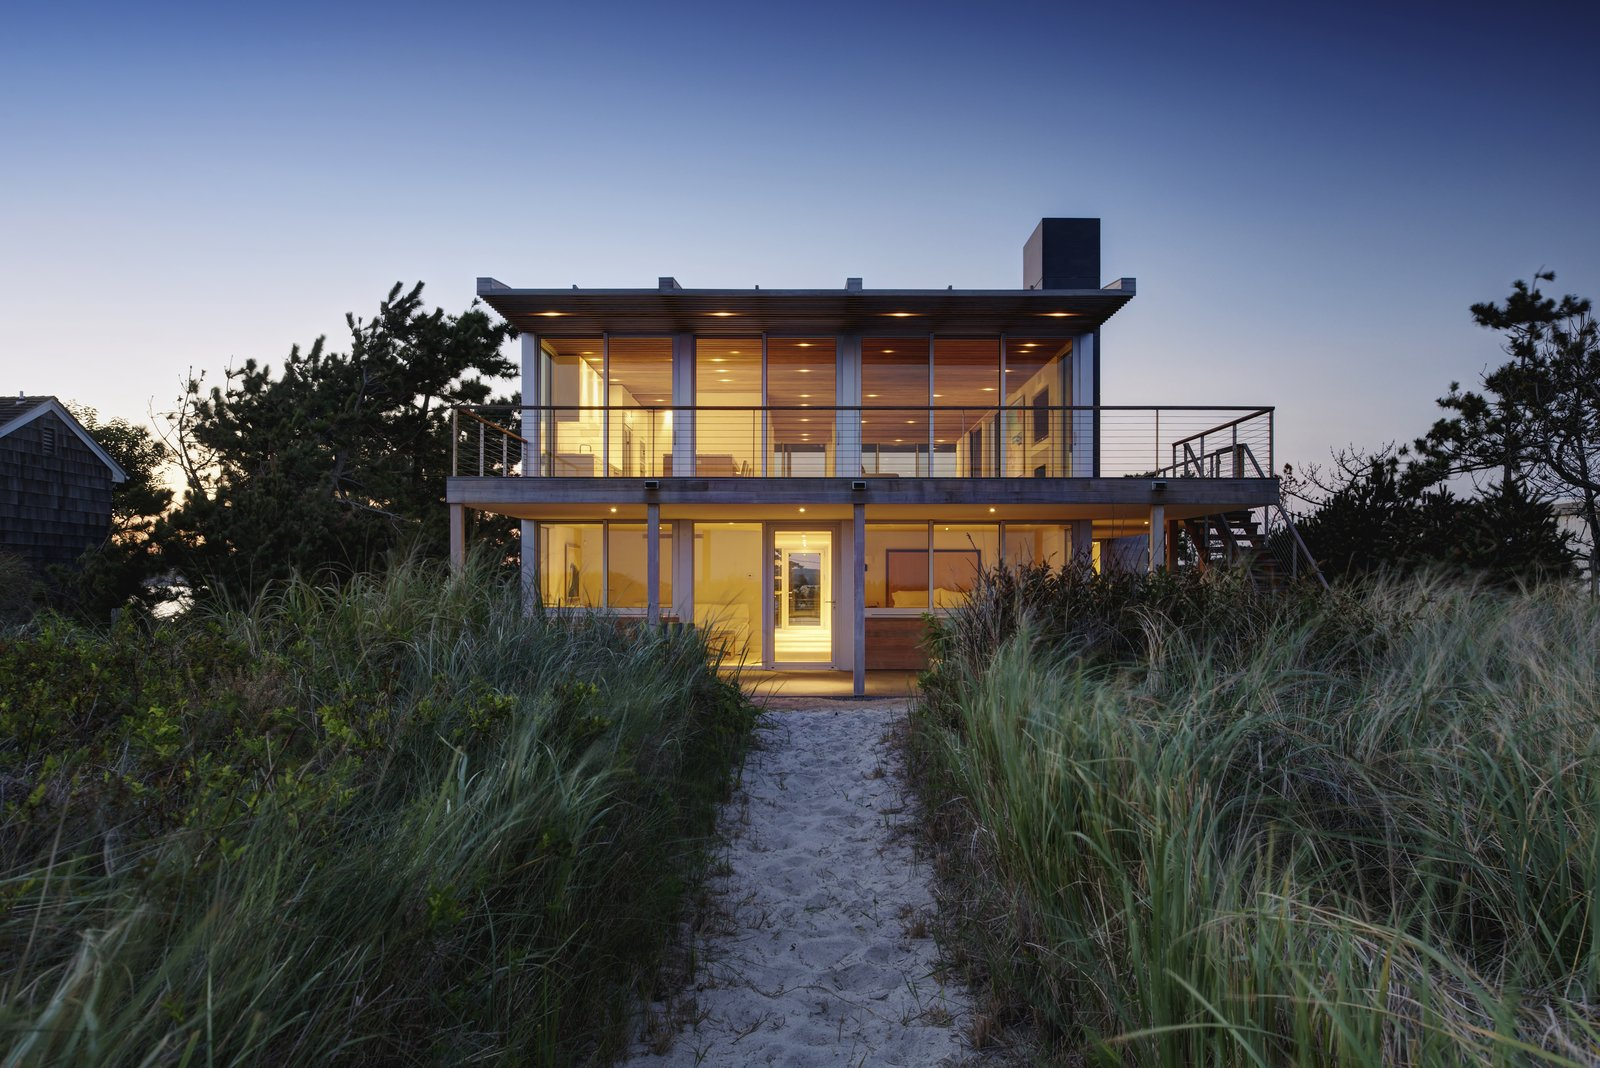 An existing non-descript structure, perched above the crest of the dune between the ocean and bay, was thoroughly transformed. We utilized clearly defined volumes, simple, durable, yet elegant materials and details instilling a strong connection between the indoors and out.